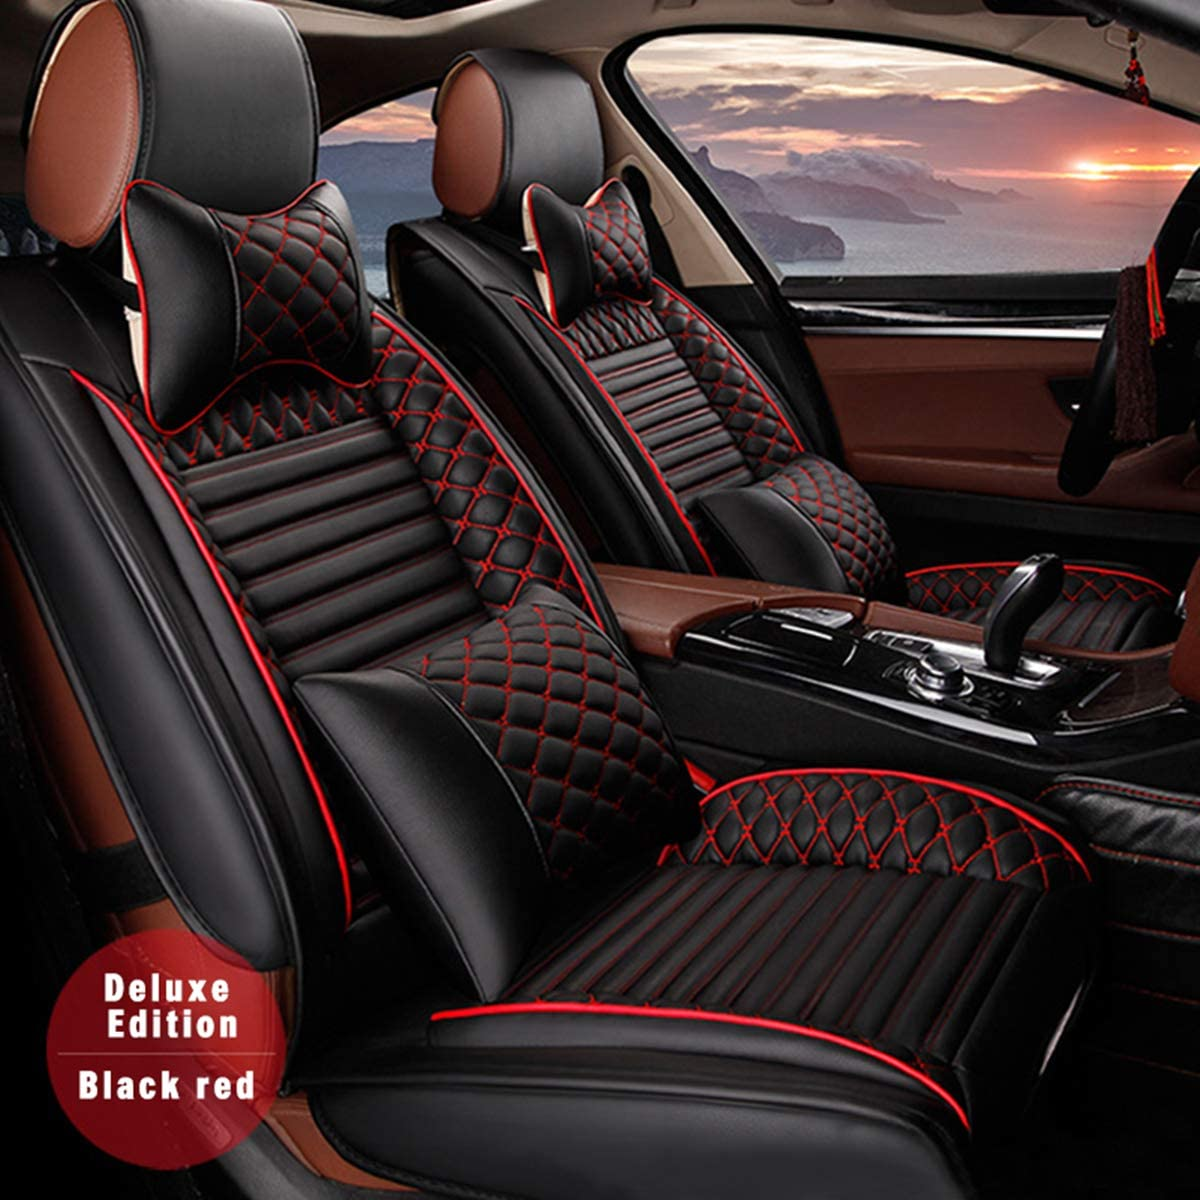 for Cadillac Universal 5-Seats Car Seat Covers PU Leather Waterproof Seats Cushion All Season Fit Most Car, Truck, SUV, or Van Front Seat+Rear Seat 9Pcs Luxury Edition Black with Red